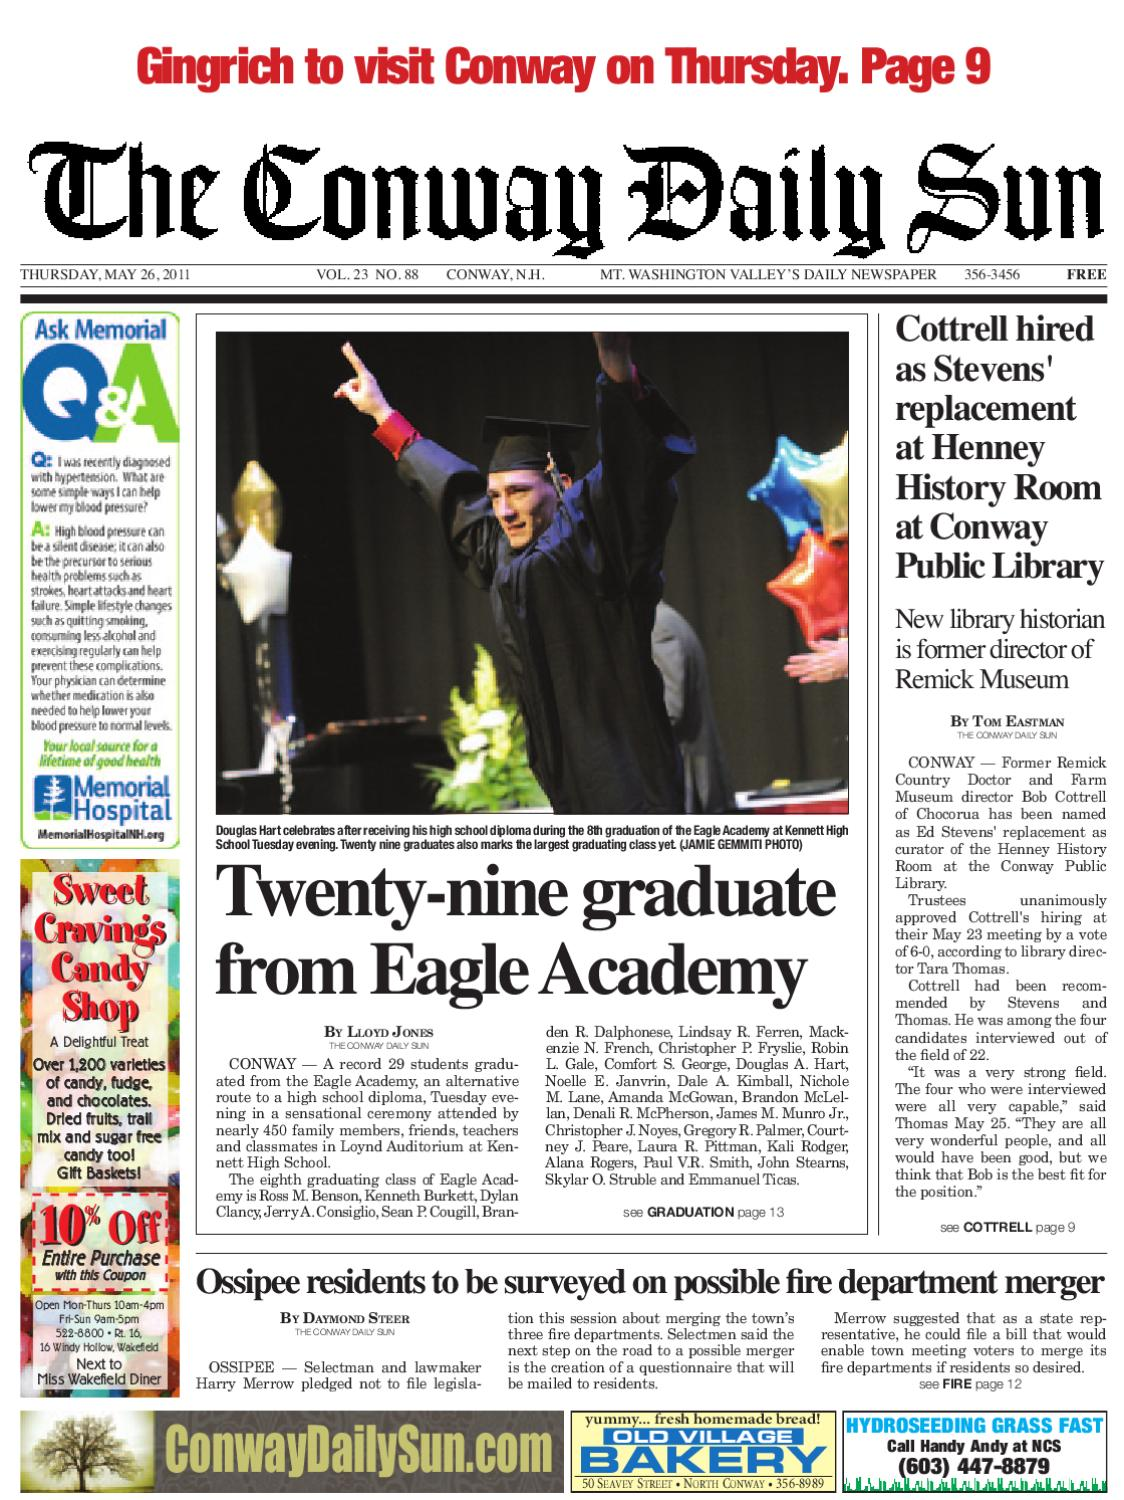 The conway daily sun thursday may 26 2011 by daily sun issuu fandeluxe Choice Image